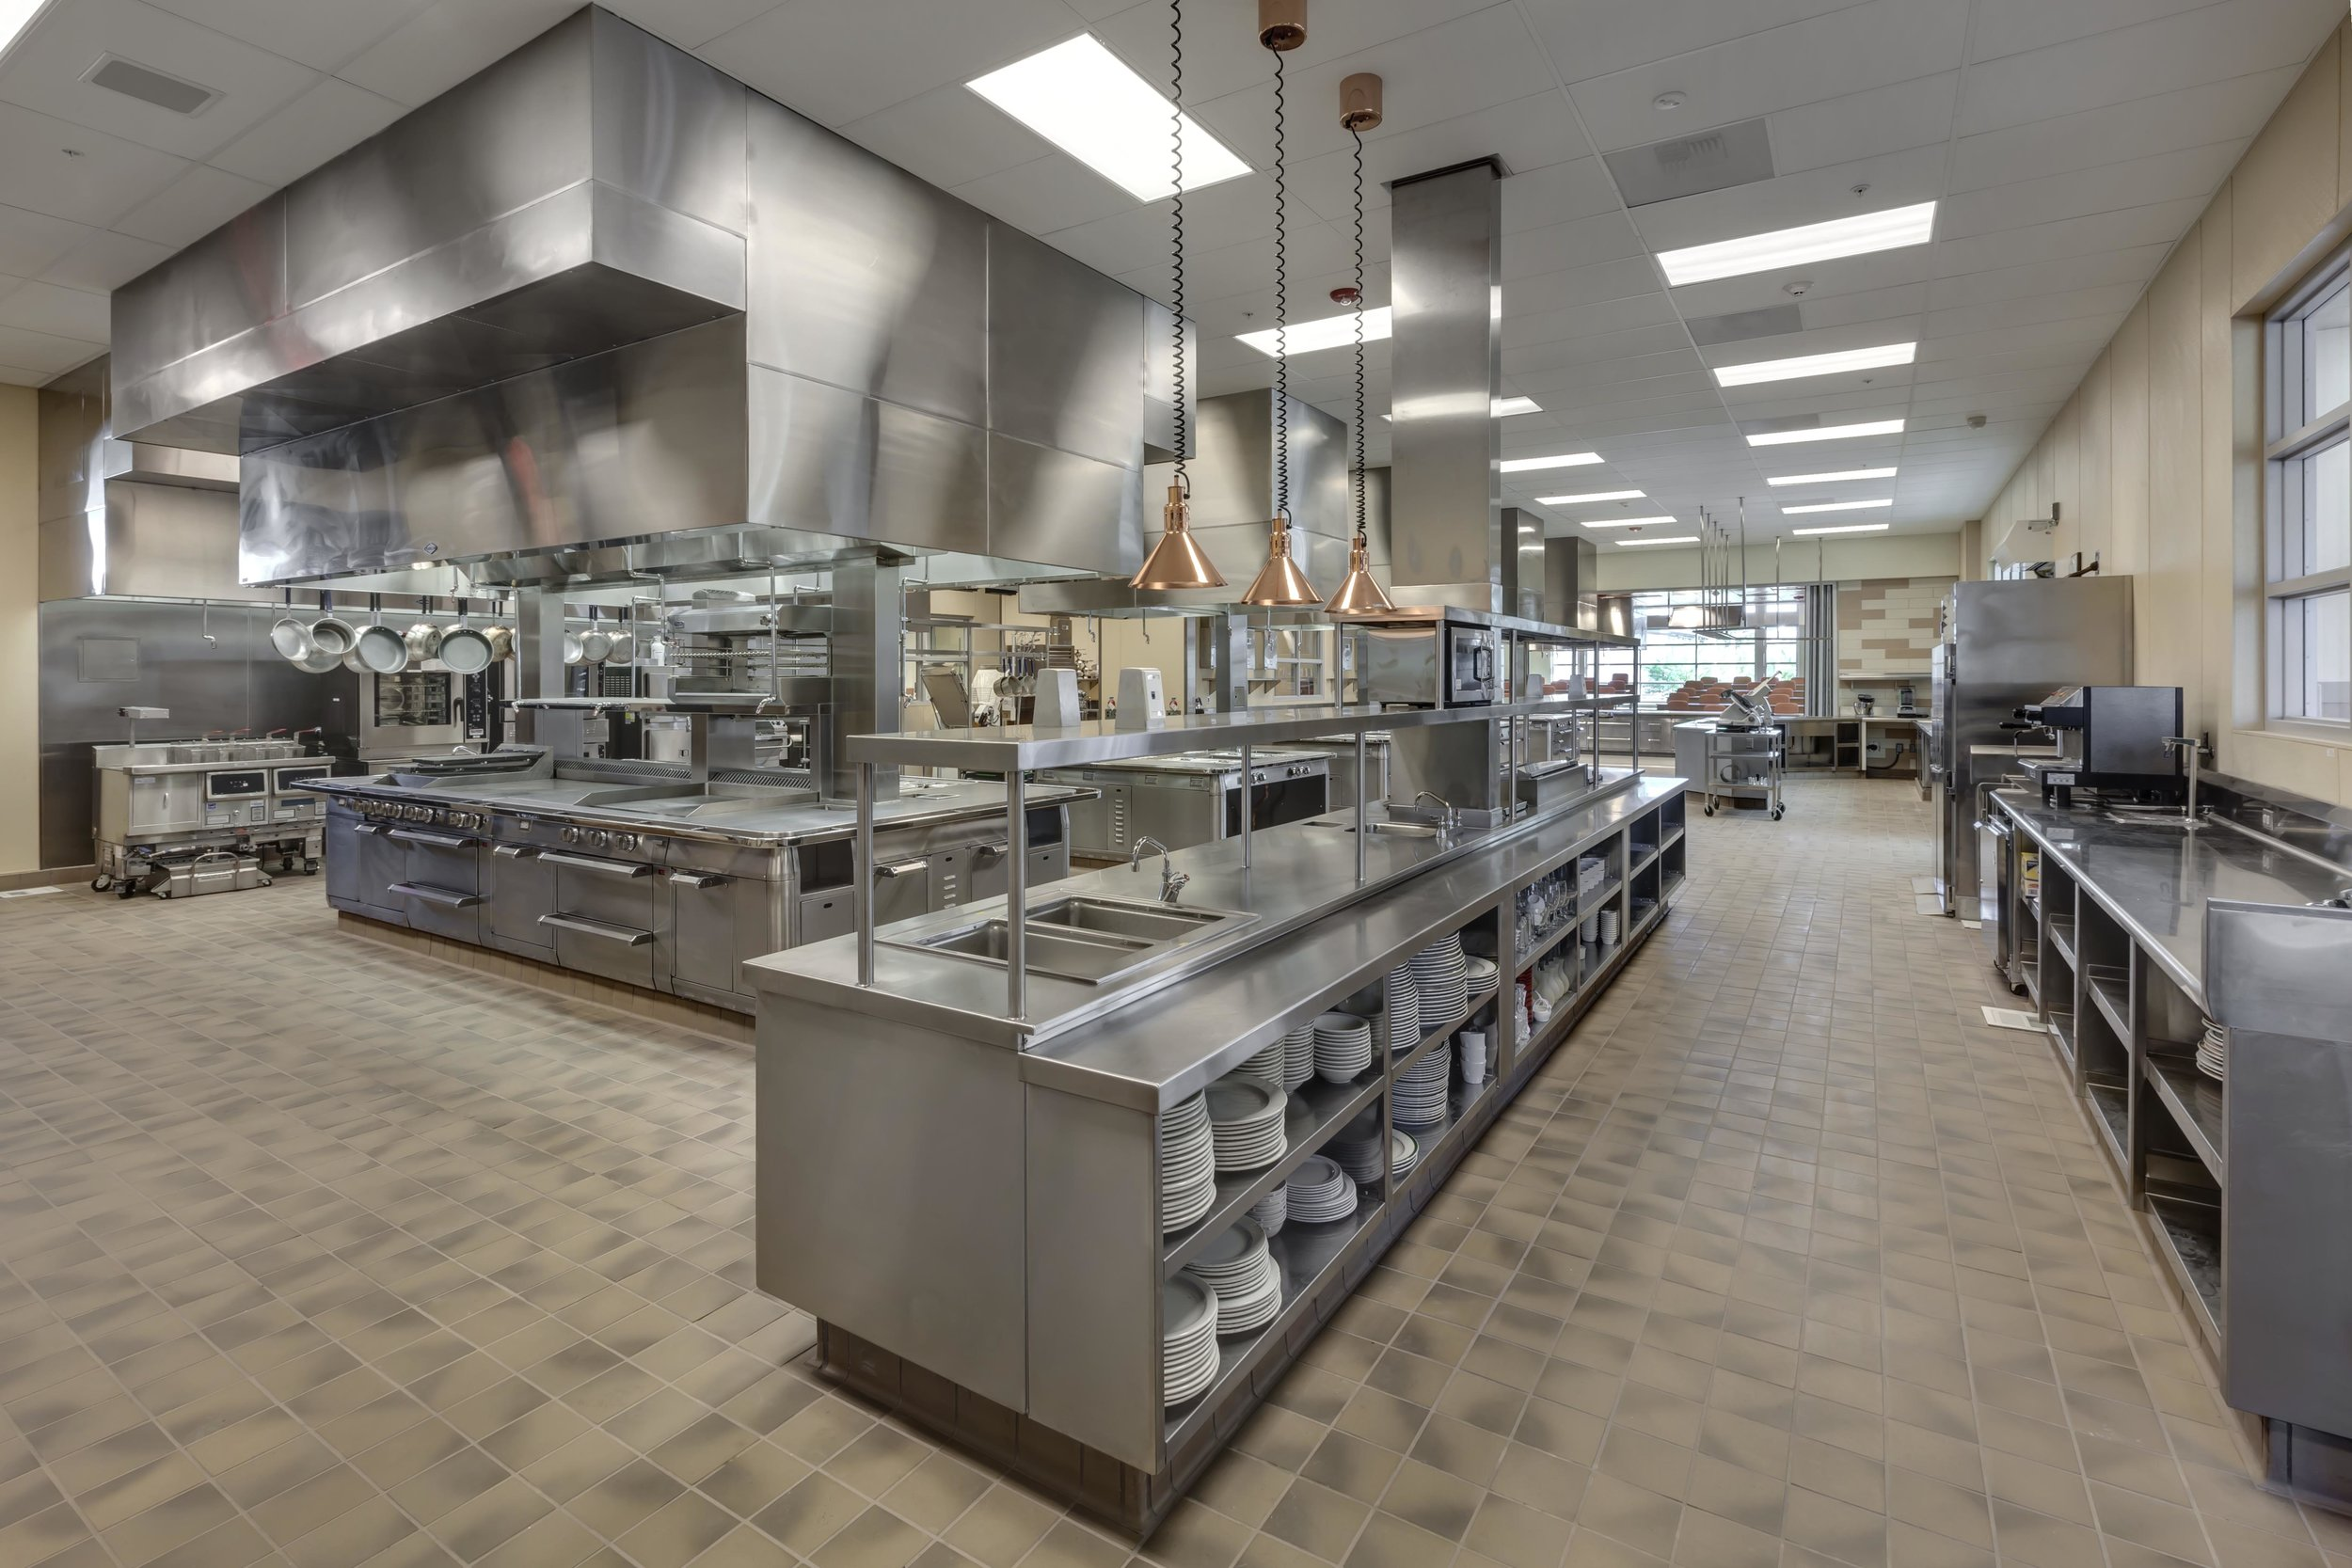 La Quinta High School  Desert Sands Unified School District Sector: Hospitality, Tourism and Recreation Pathway: Culinary Arts Type: New Construction  Score: 117